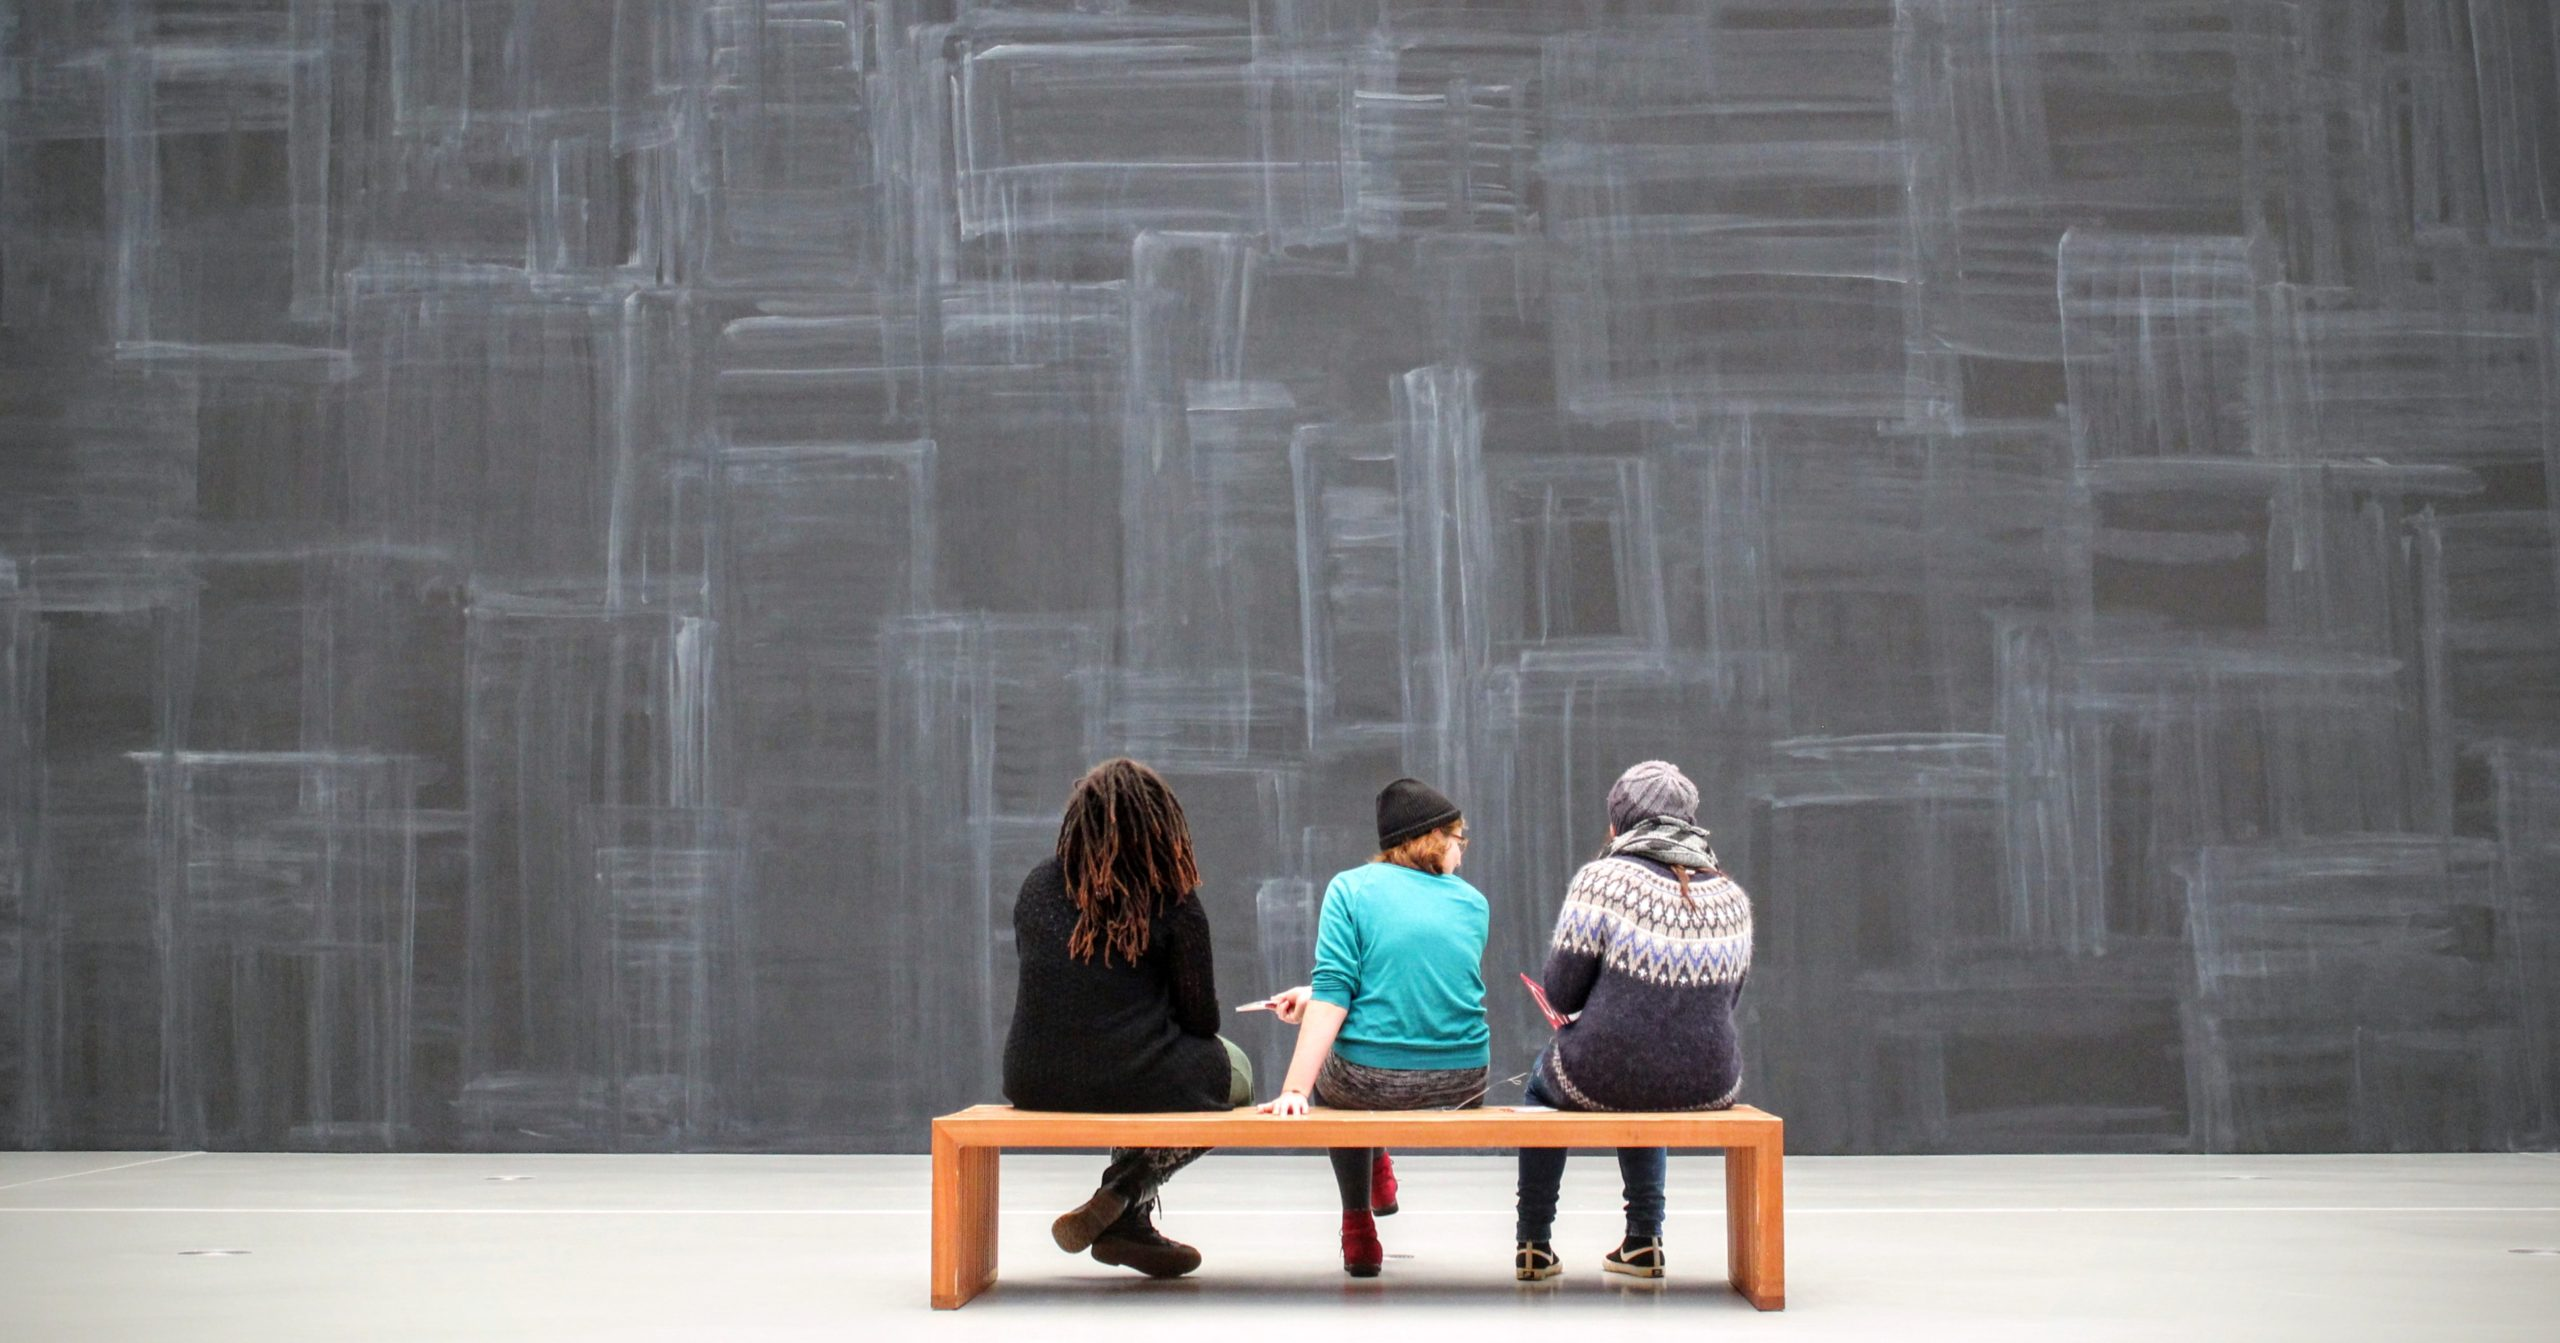 Three people site with their backs to the camera, looking at an art installation